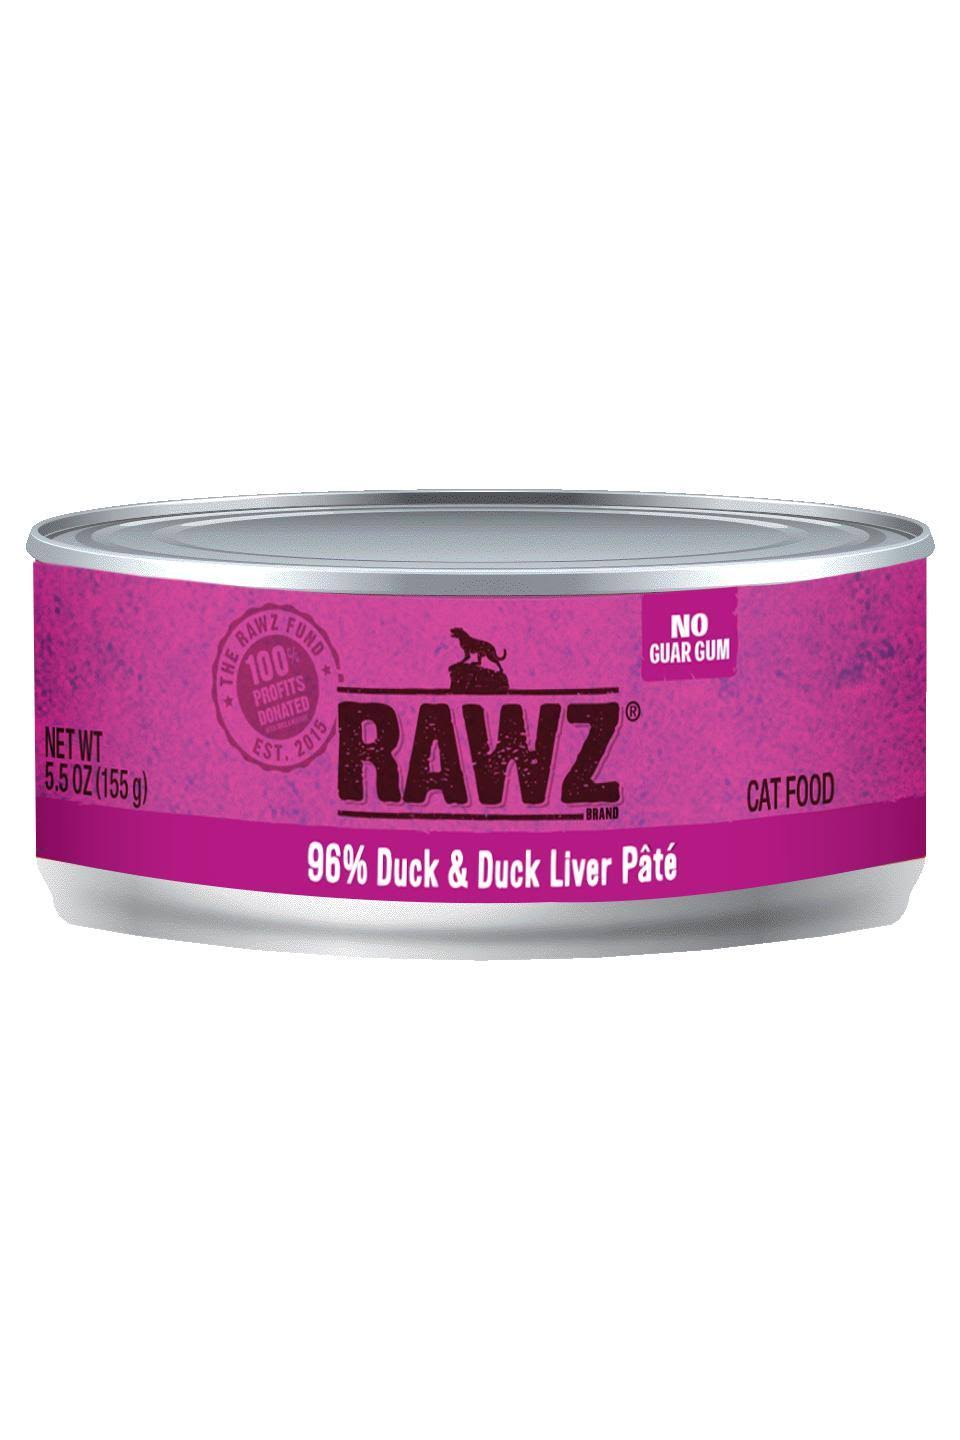 Rawz 96% Duck & Duck Liver Cat Food Can | Tomlinson's Feed 5.5 oz